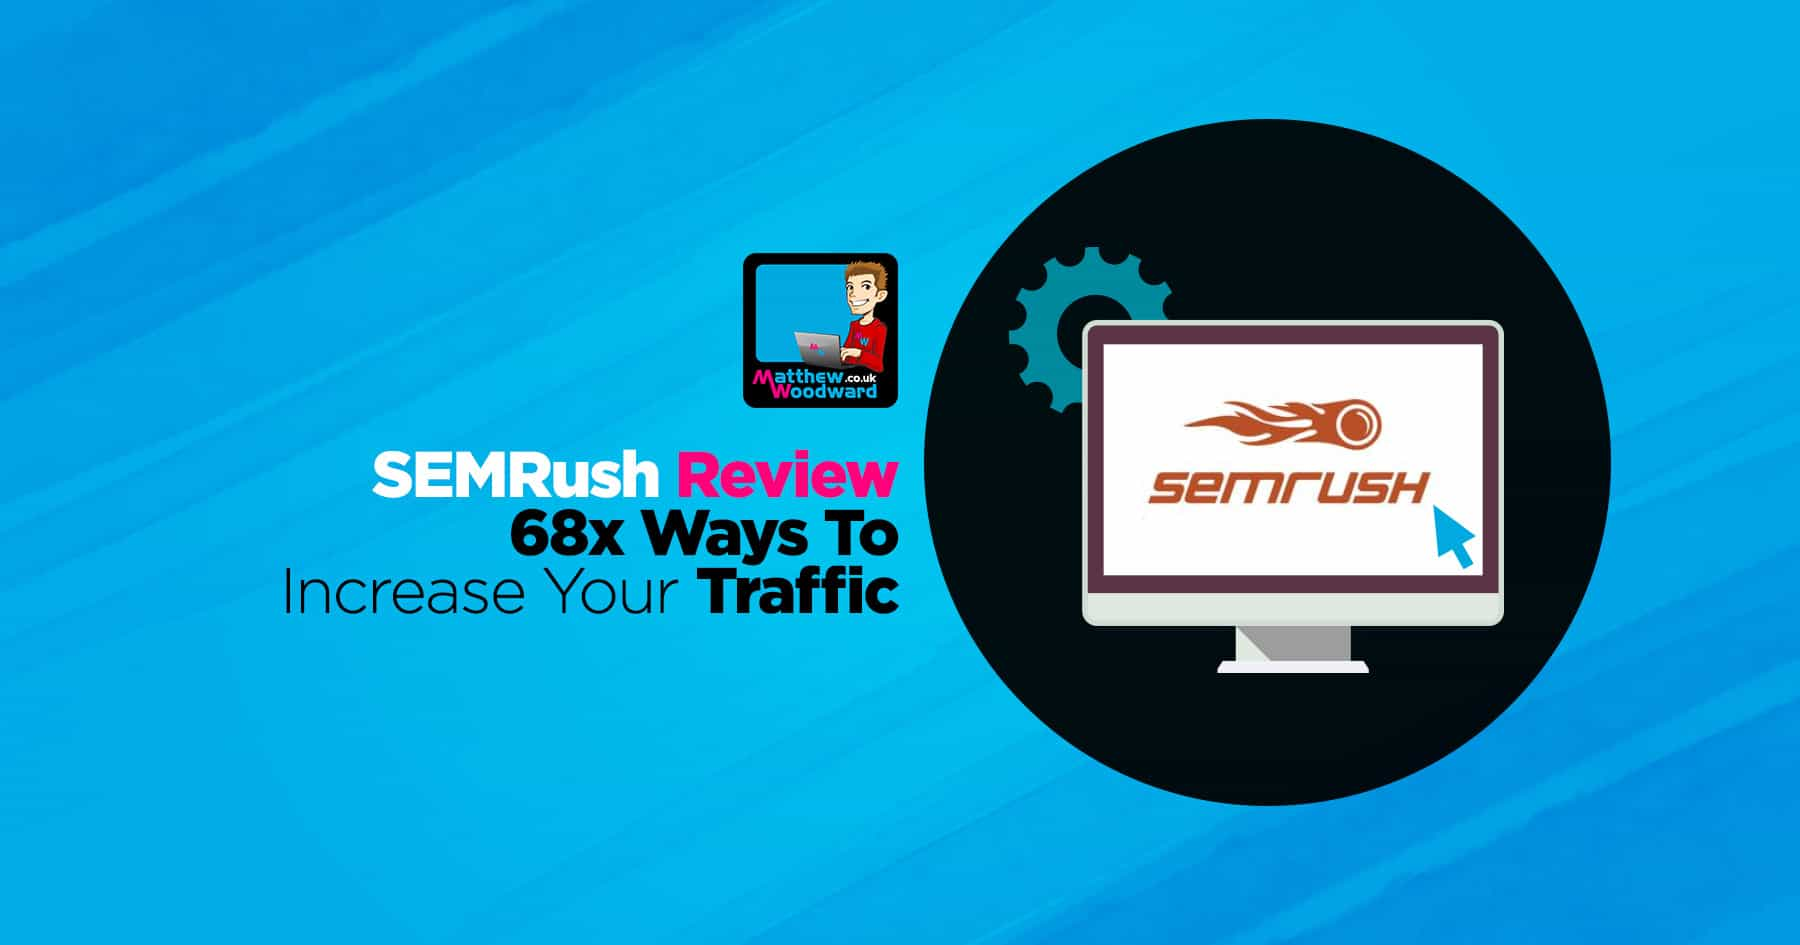 Semrush Seo Software Buy Or Not